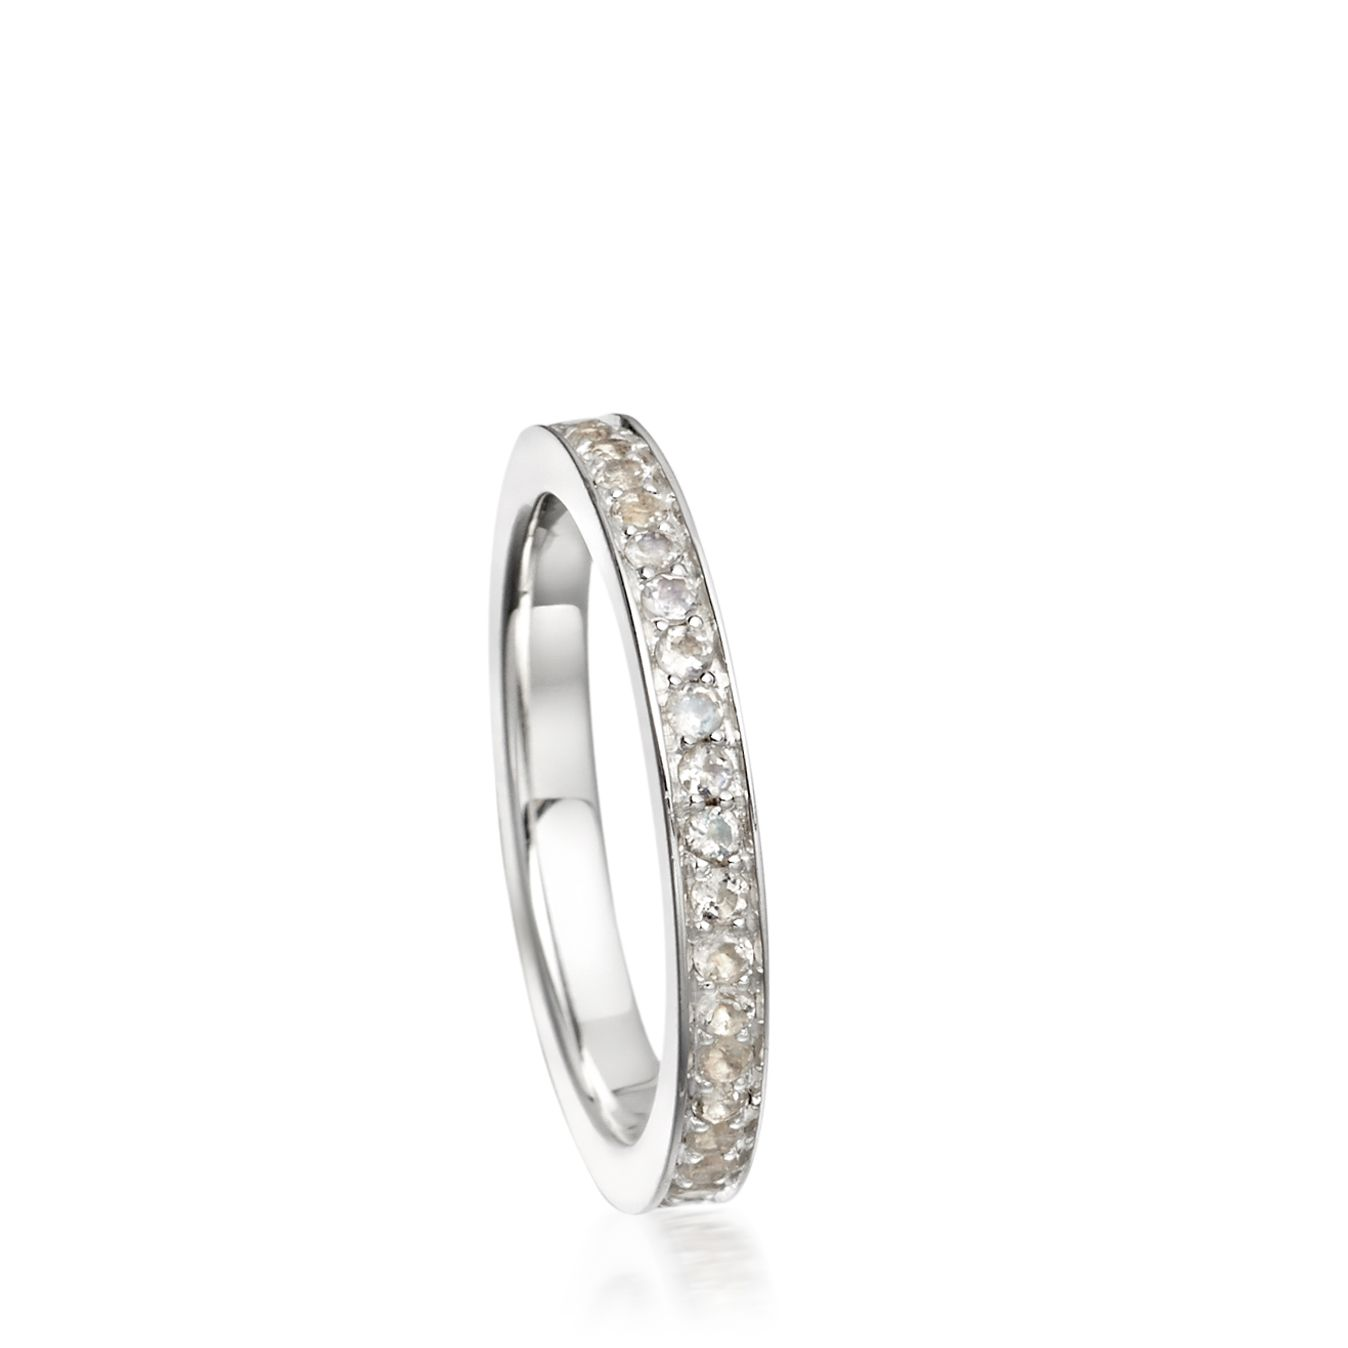 Pin By Ethne Twomey On Live It Love It Eternity Ring Rings